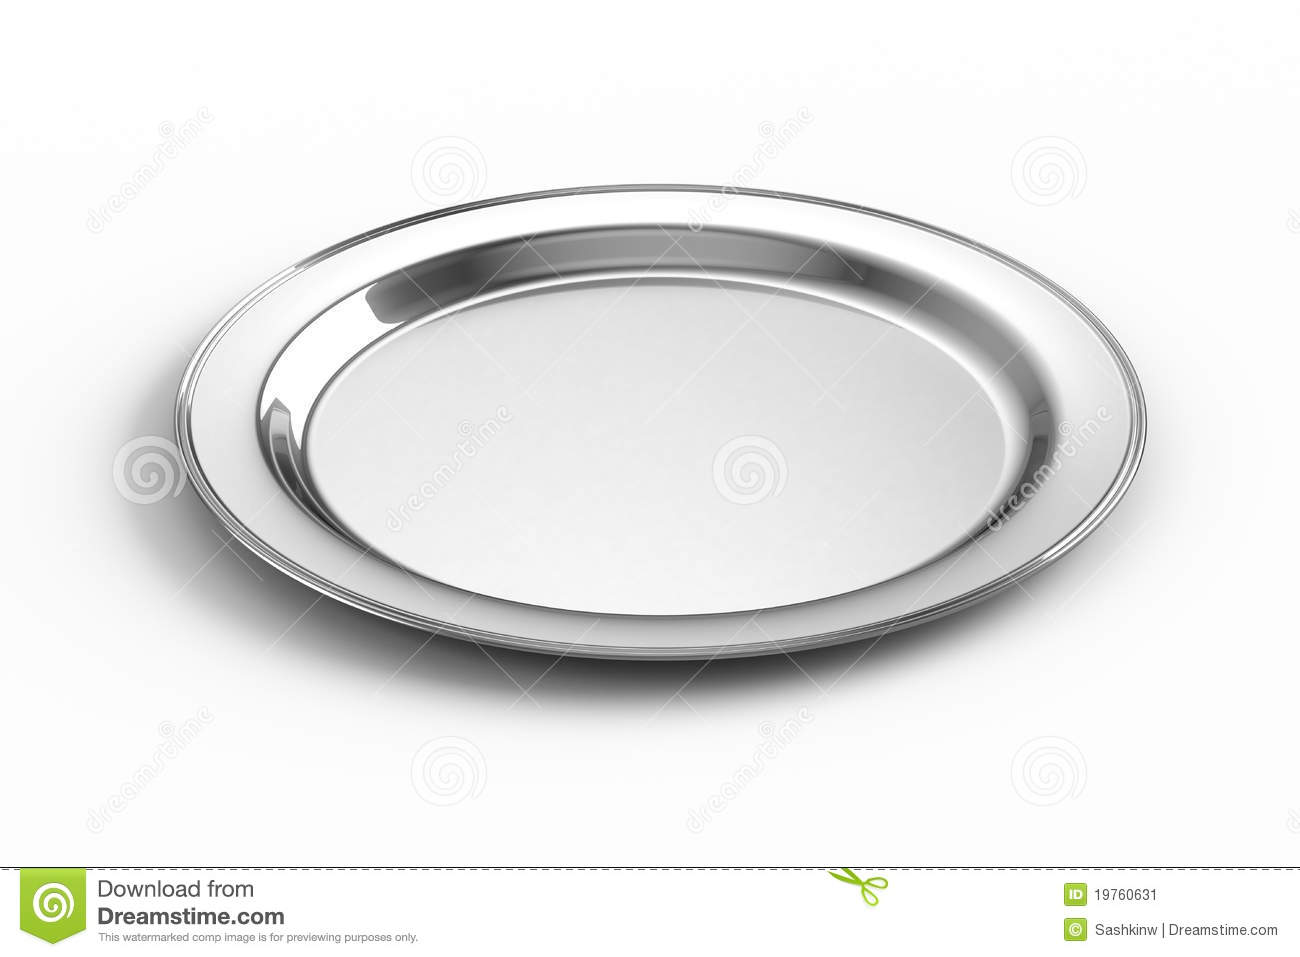 Silver food plate clipart.